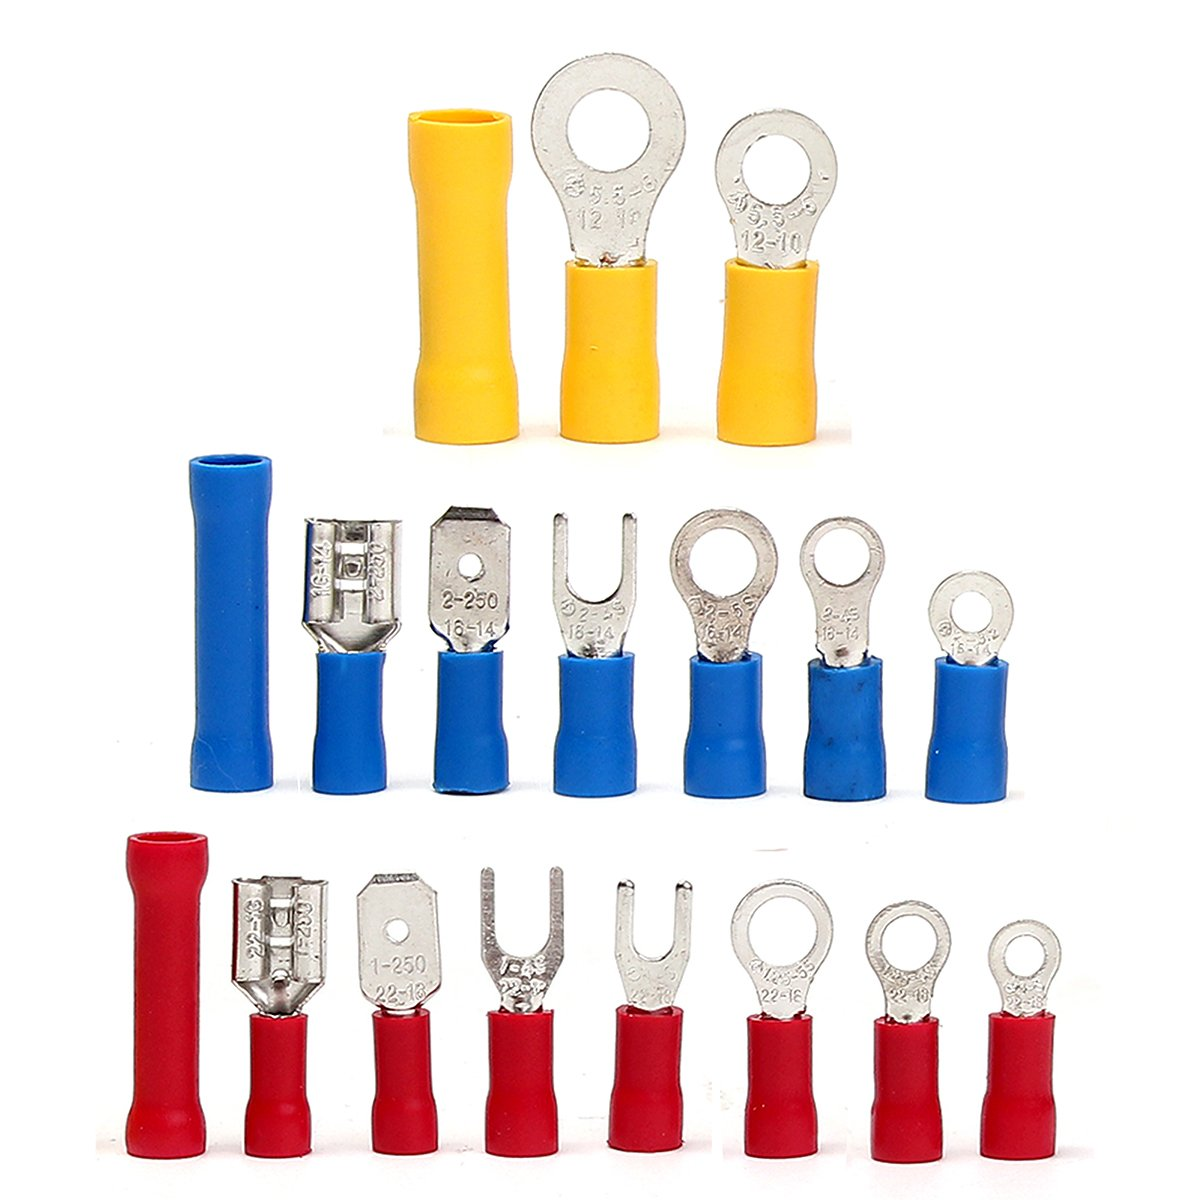 1200Pcs Insulated Electrical Wire Connector Crimp Terminals Spade Assorted Set